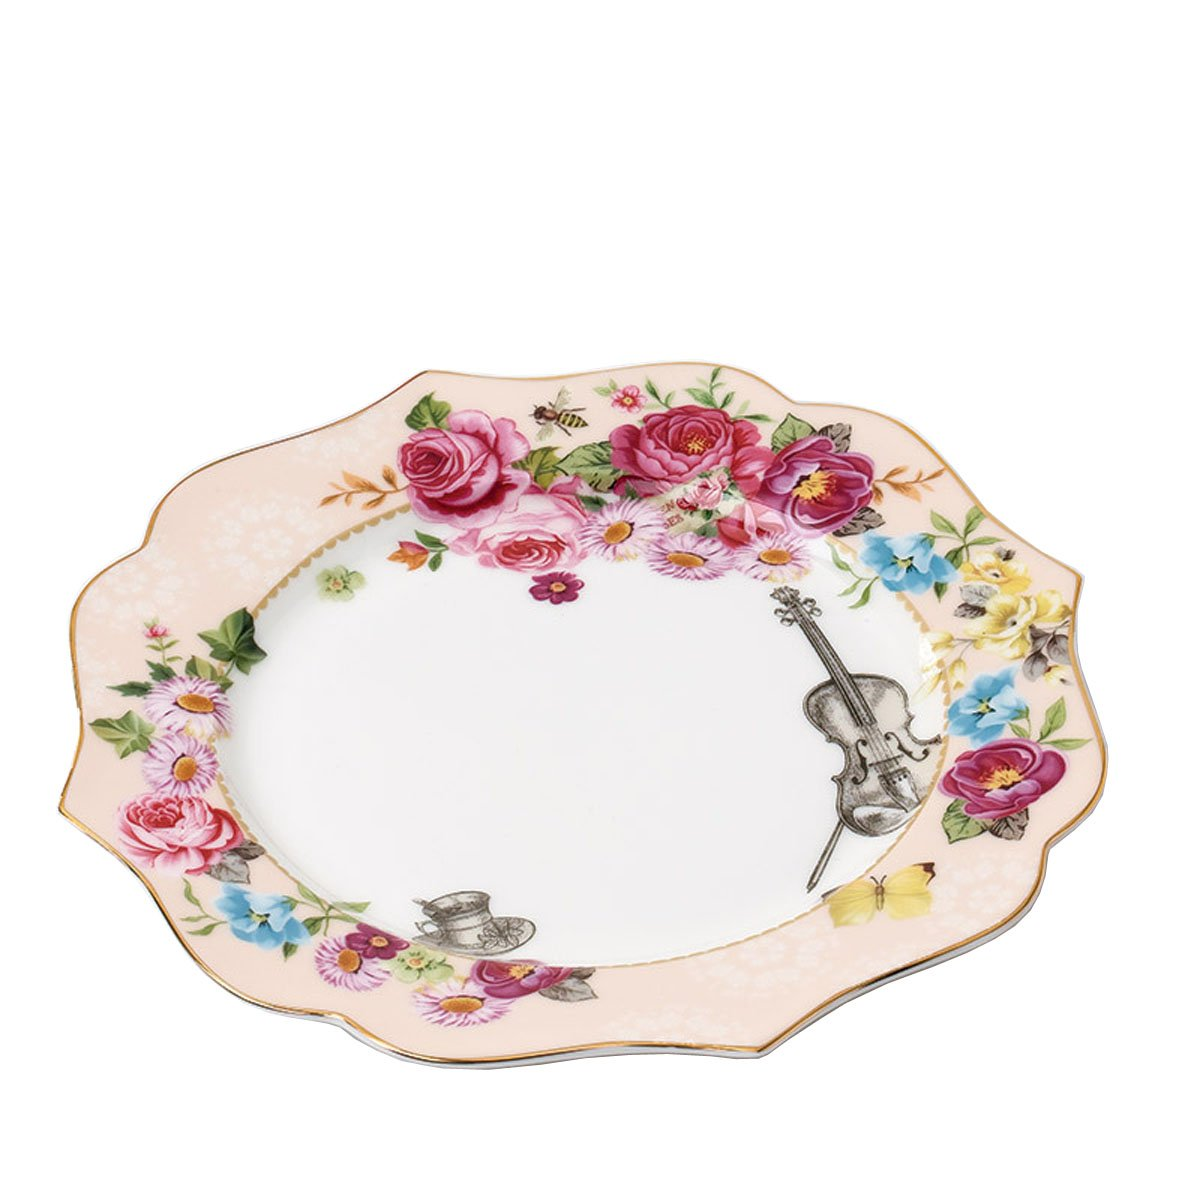 FlorisHome Vintage Style Secret Garden Fine Bone China Flower Gold Trim Dessert Plate Fruit Plate Cake Plate Violin and Butterfly Present for Lovers-8 Inches